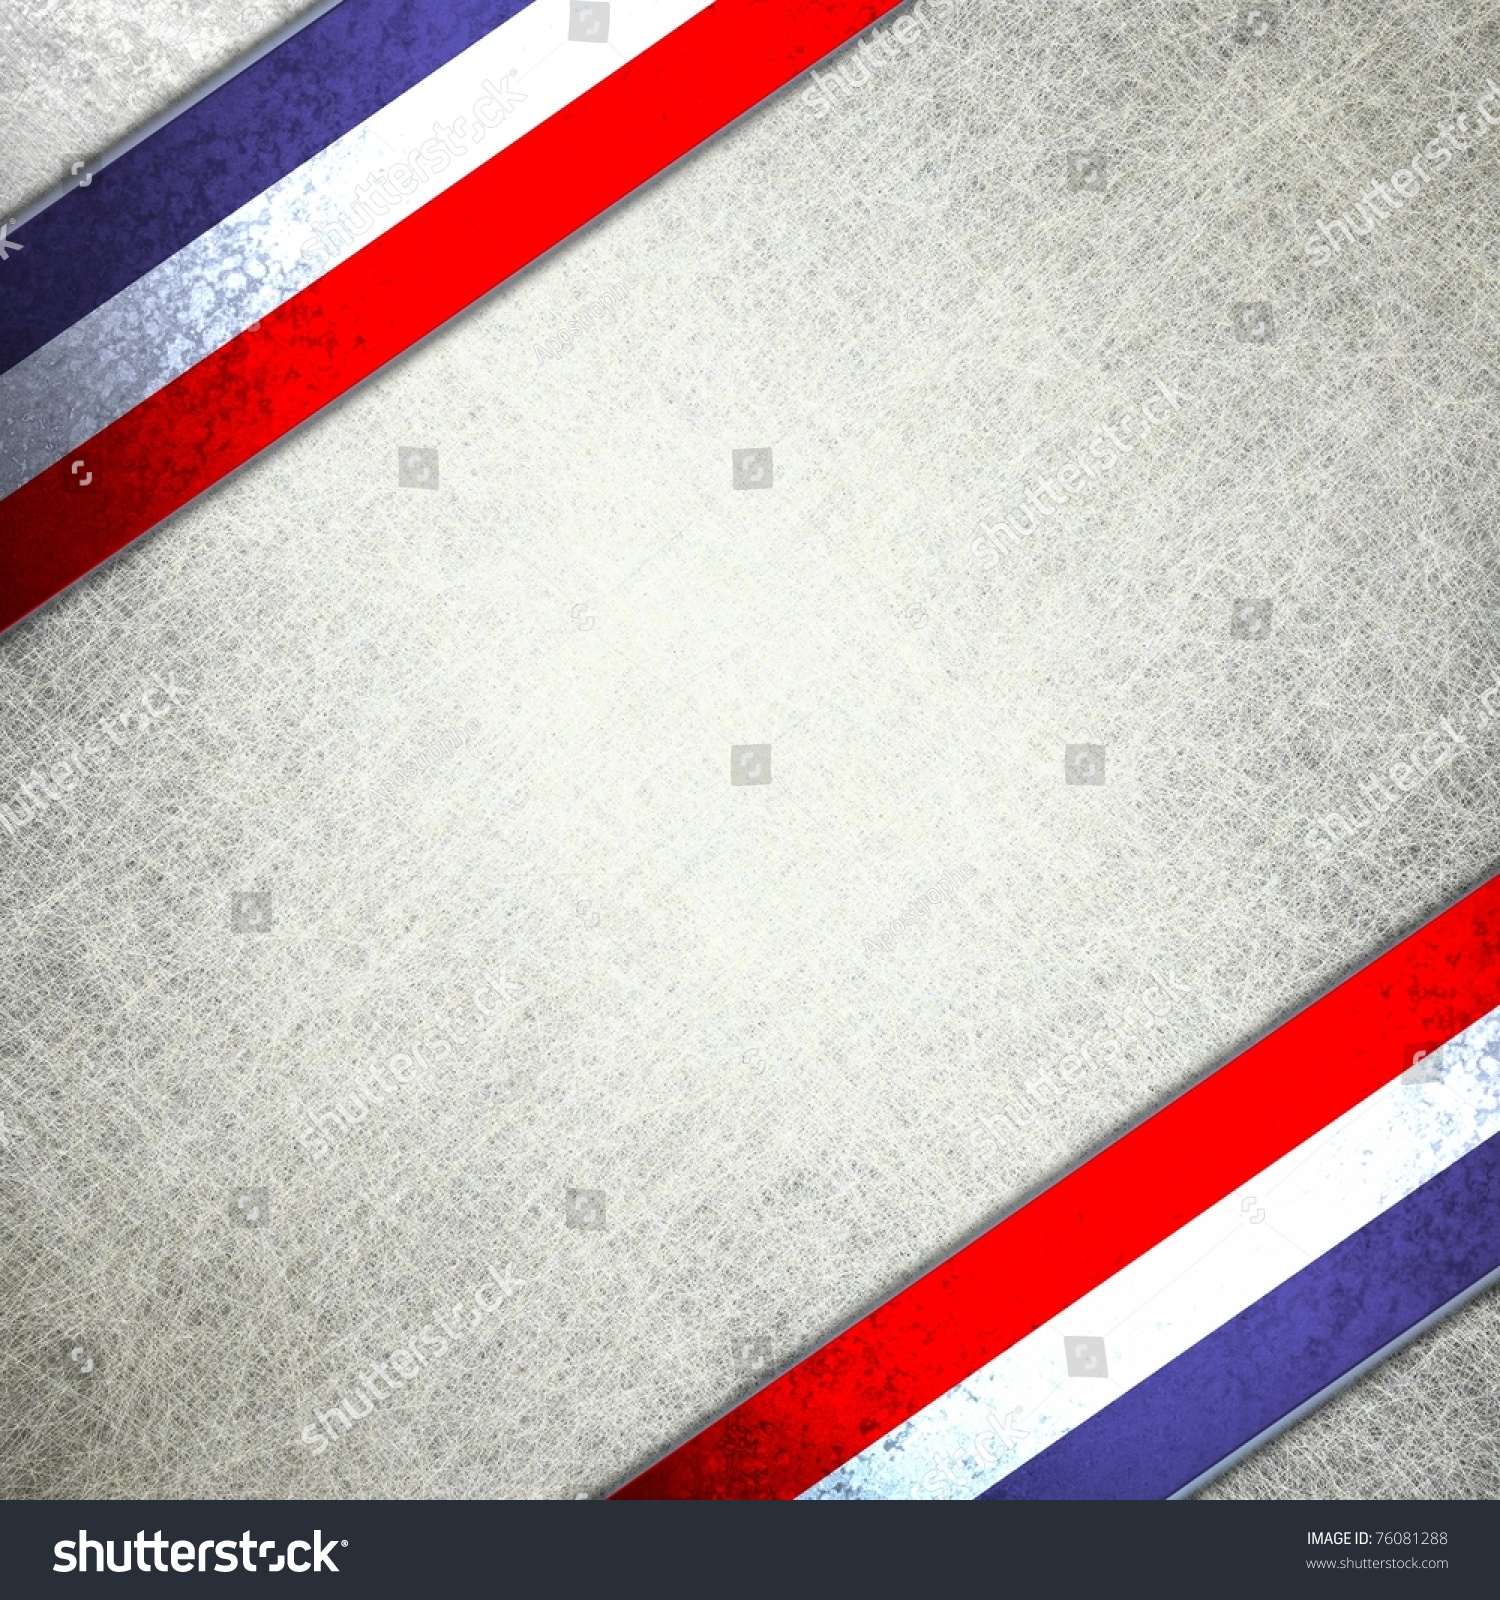 Red white blue background illustration july stock for Red white and blue wallpaper